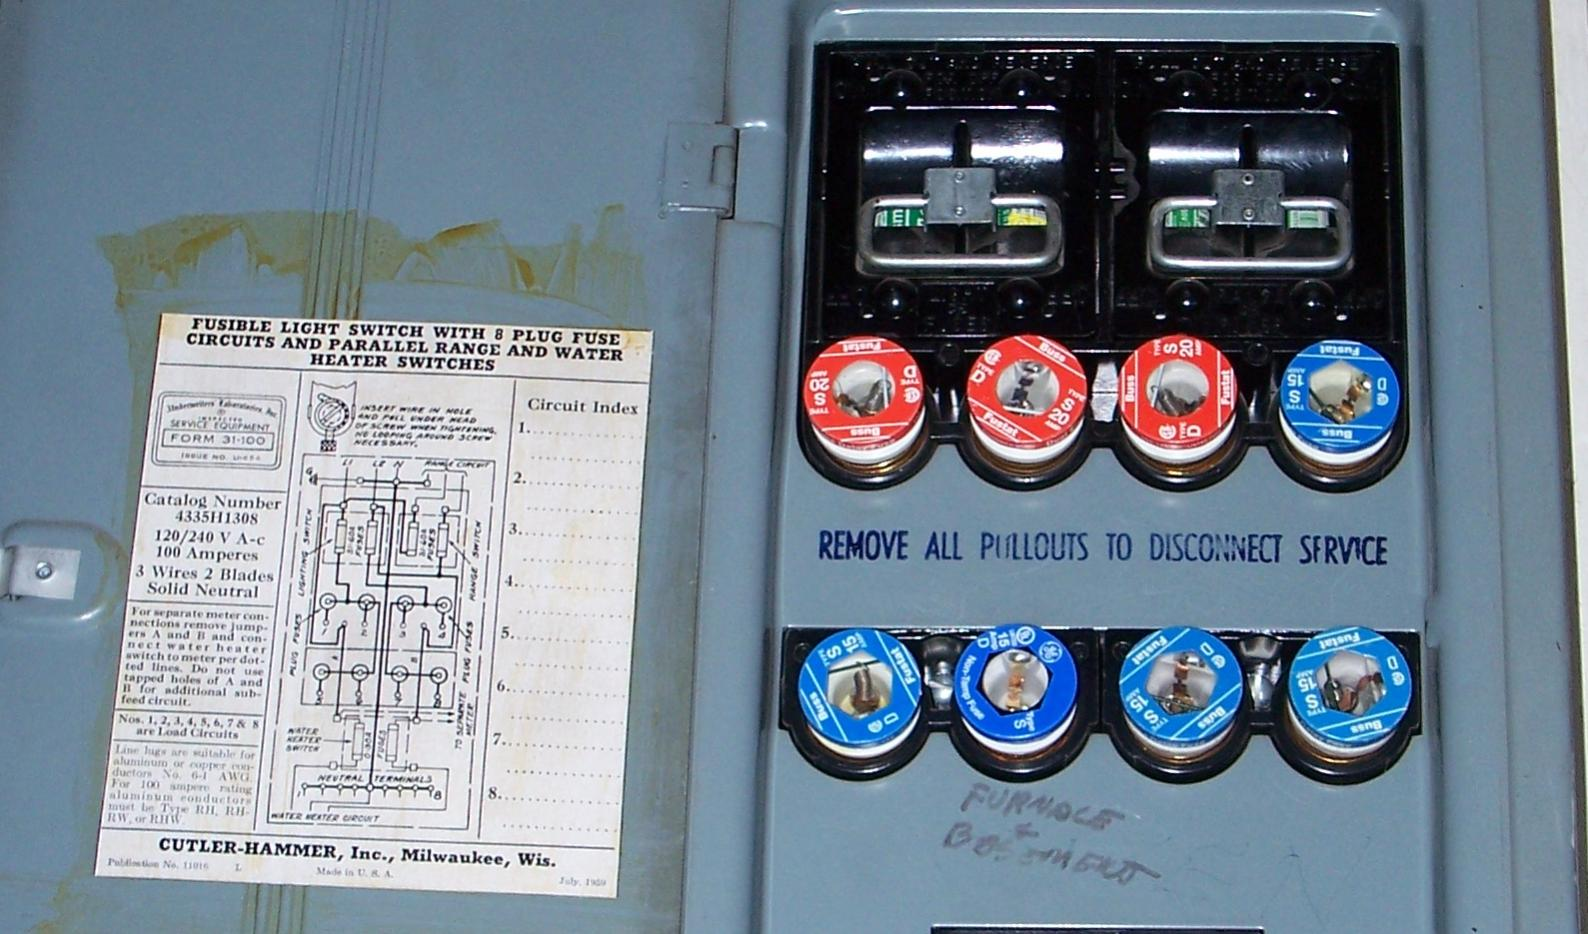 How many amps does this fuse box have?